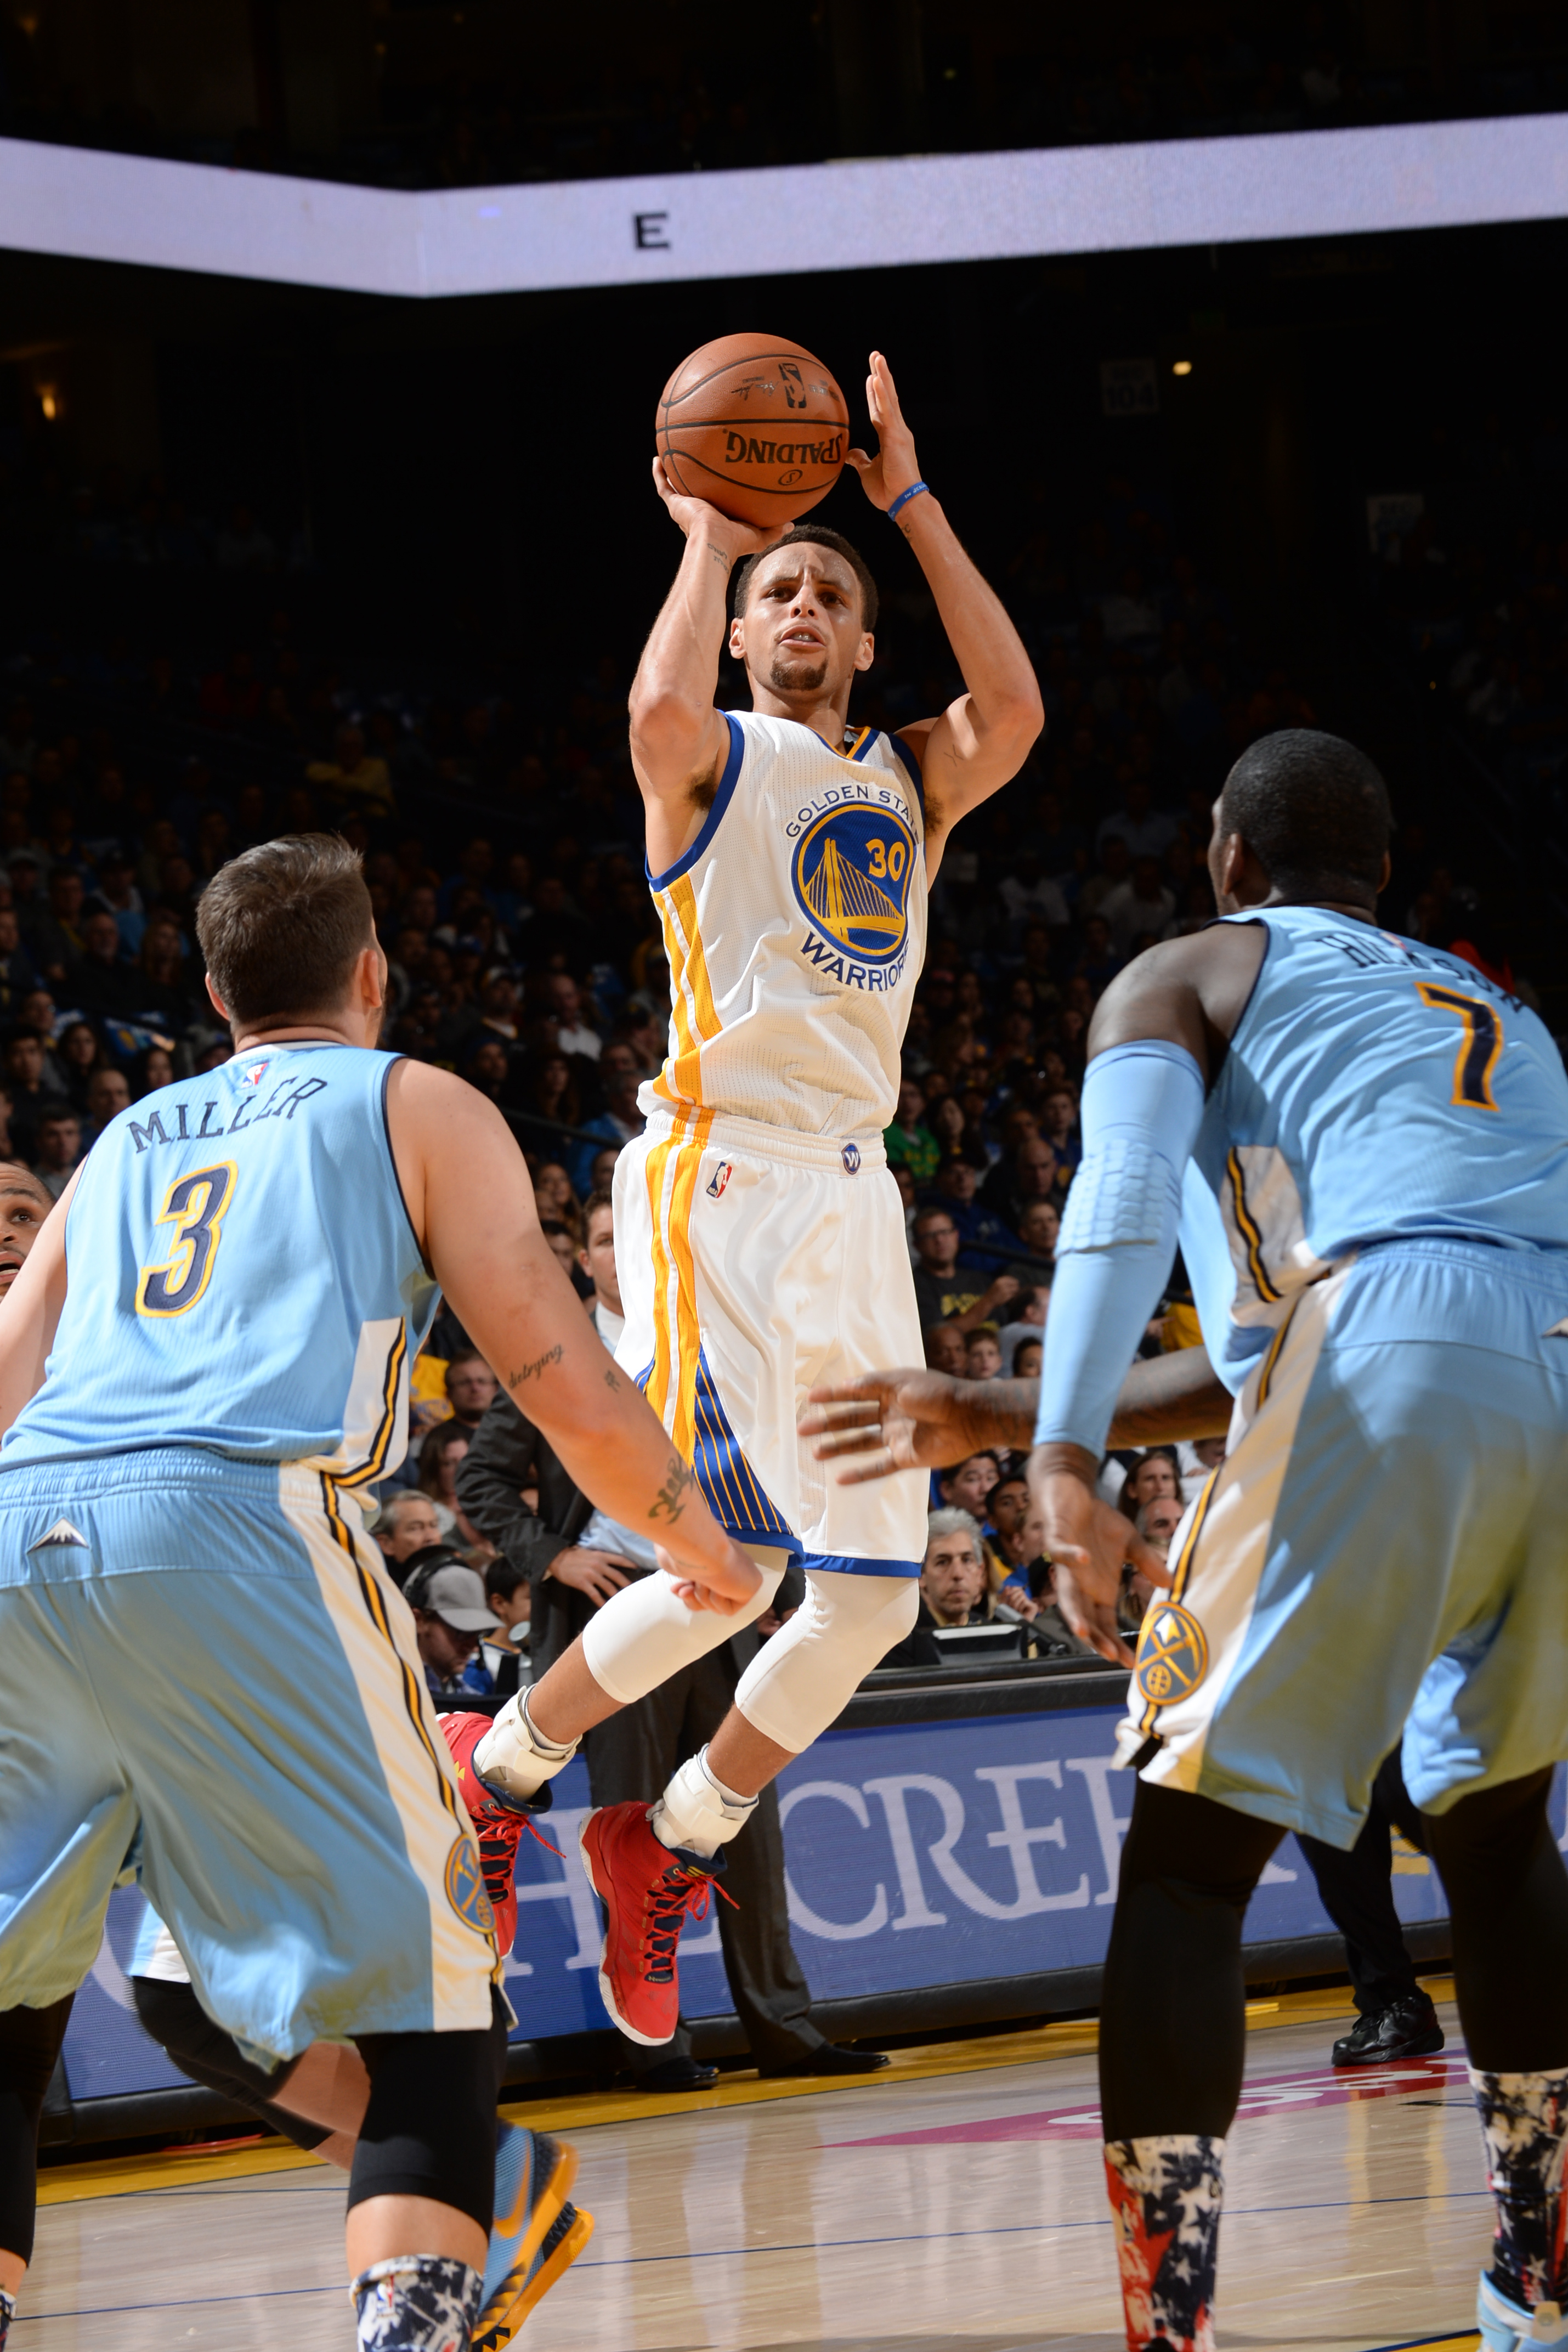 OAKLAND, CA - NOVEMBER 6: Stephen Curry #30 of the Golden State Warriors shoots against the Denver Nuggets during the game on November 6, 2015 at ORACLE in Oakland, California. (Photo by Noah Graham/NBAE via Getty Images)